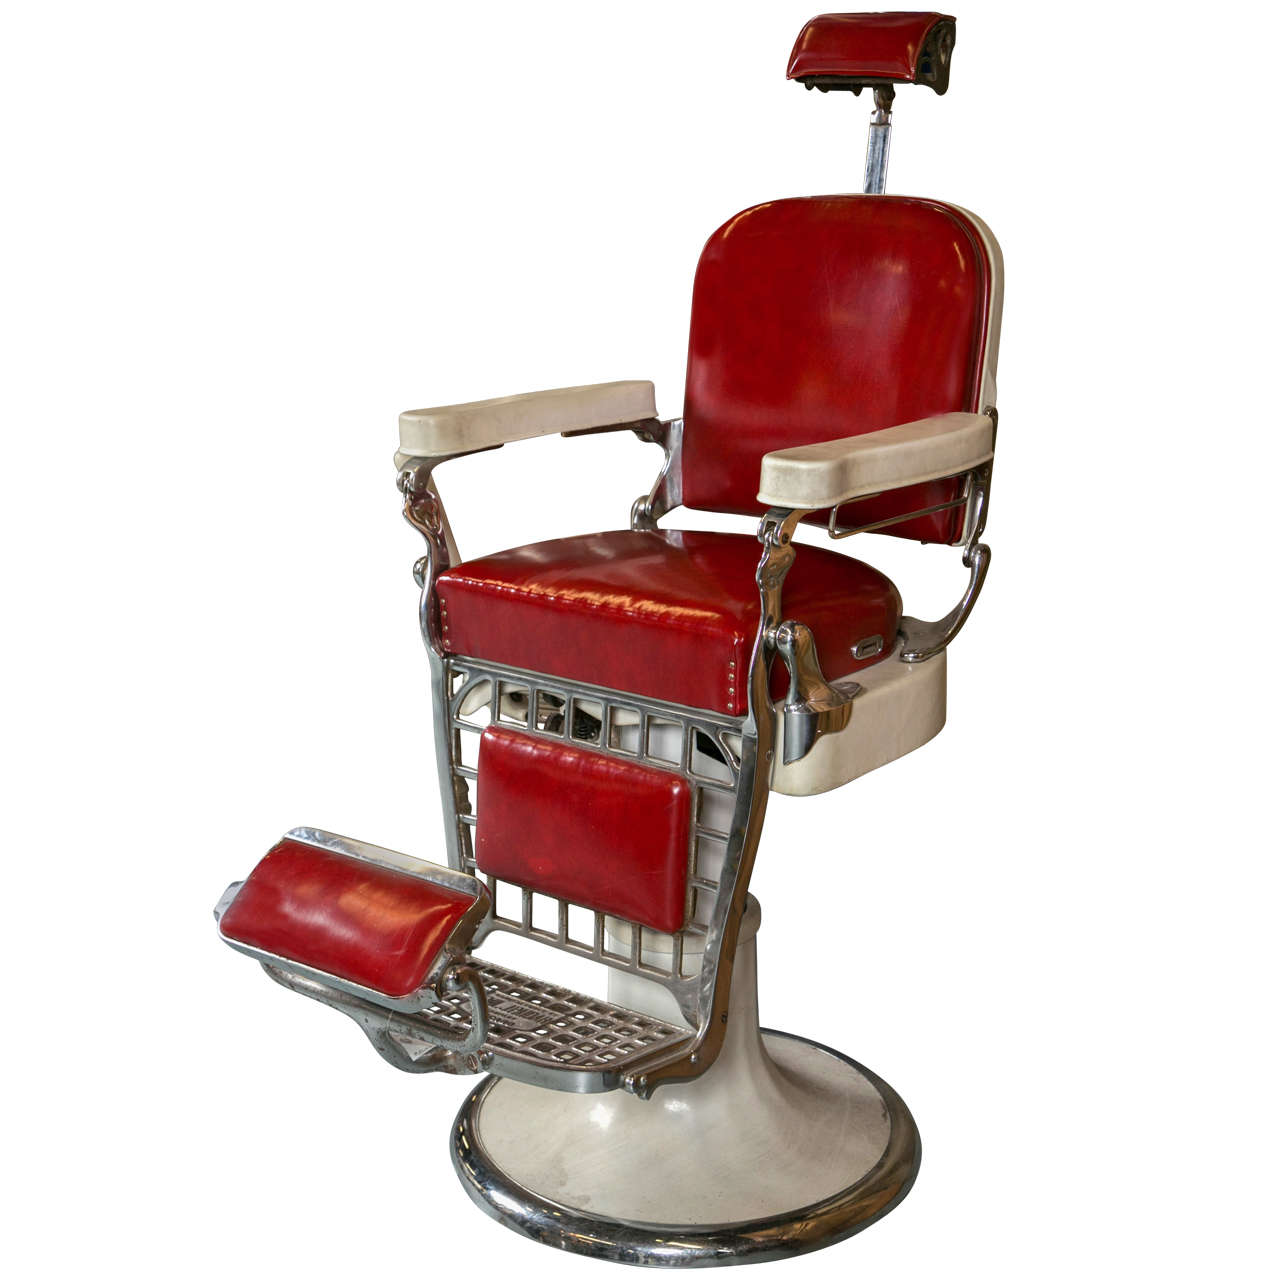 Antique Emil J Paidar Barber Chair at 1stdibs